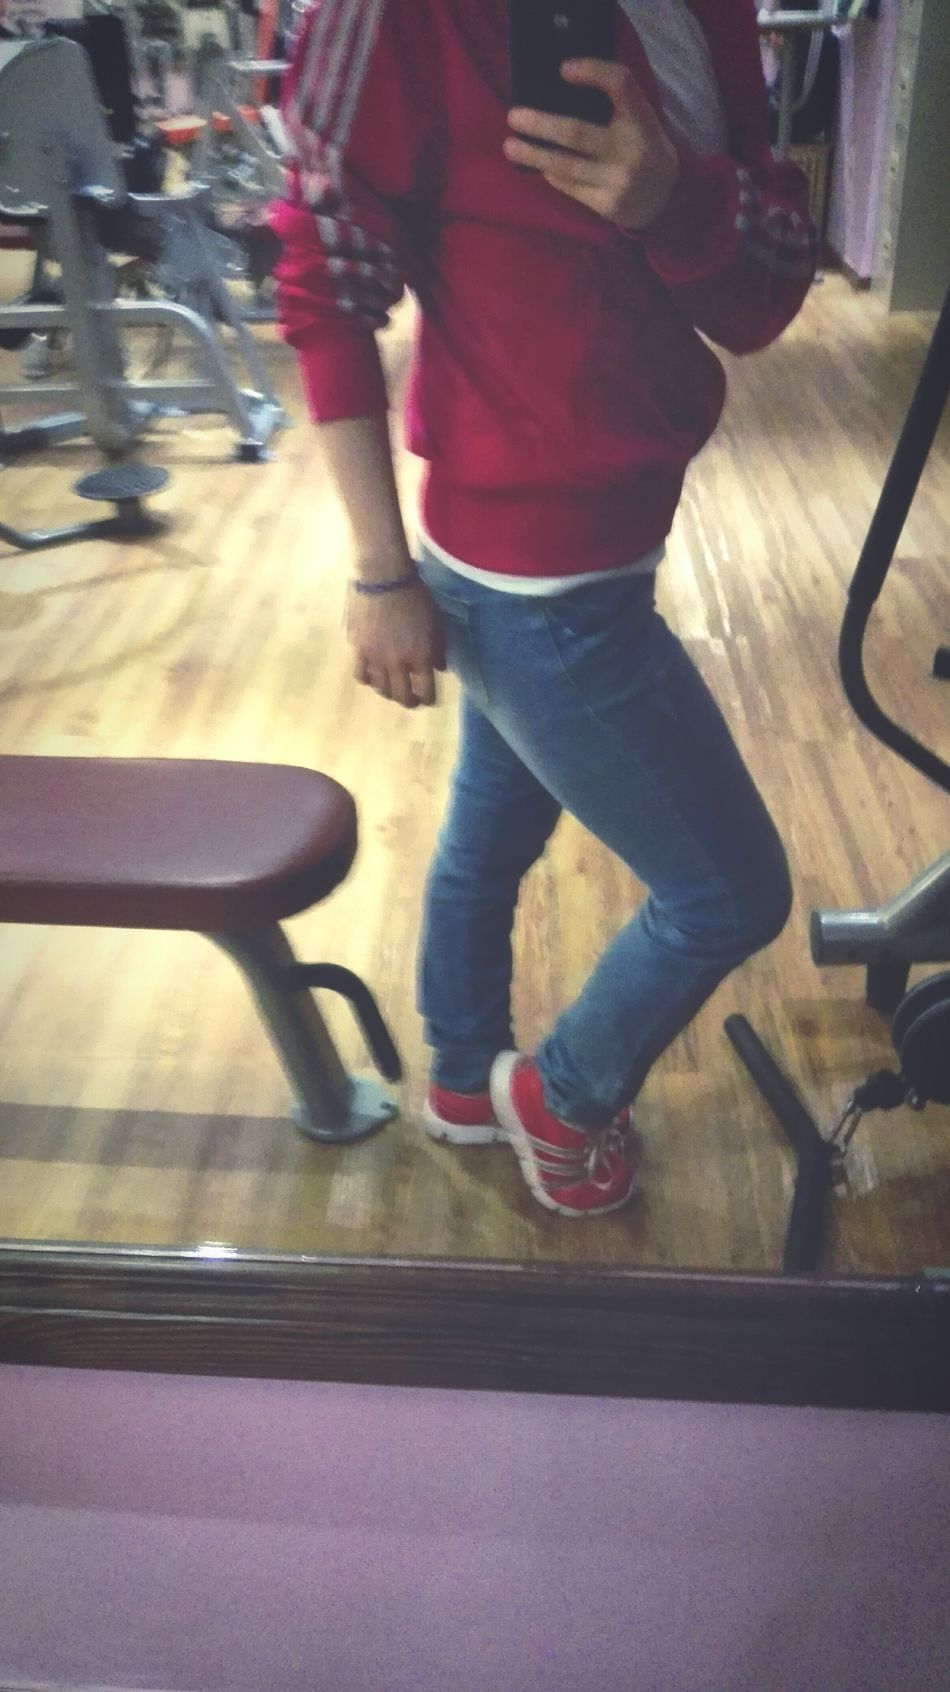 😇 Taking Photos Gym Time Addidas <3 Working Out